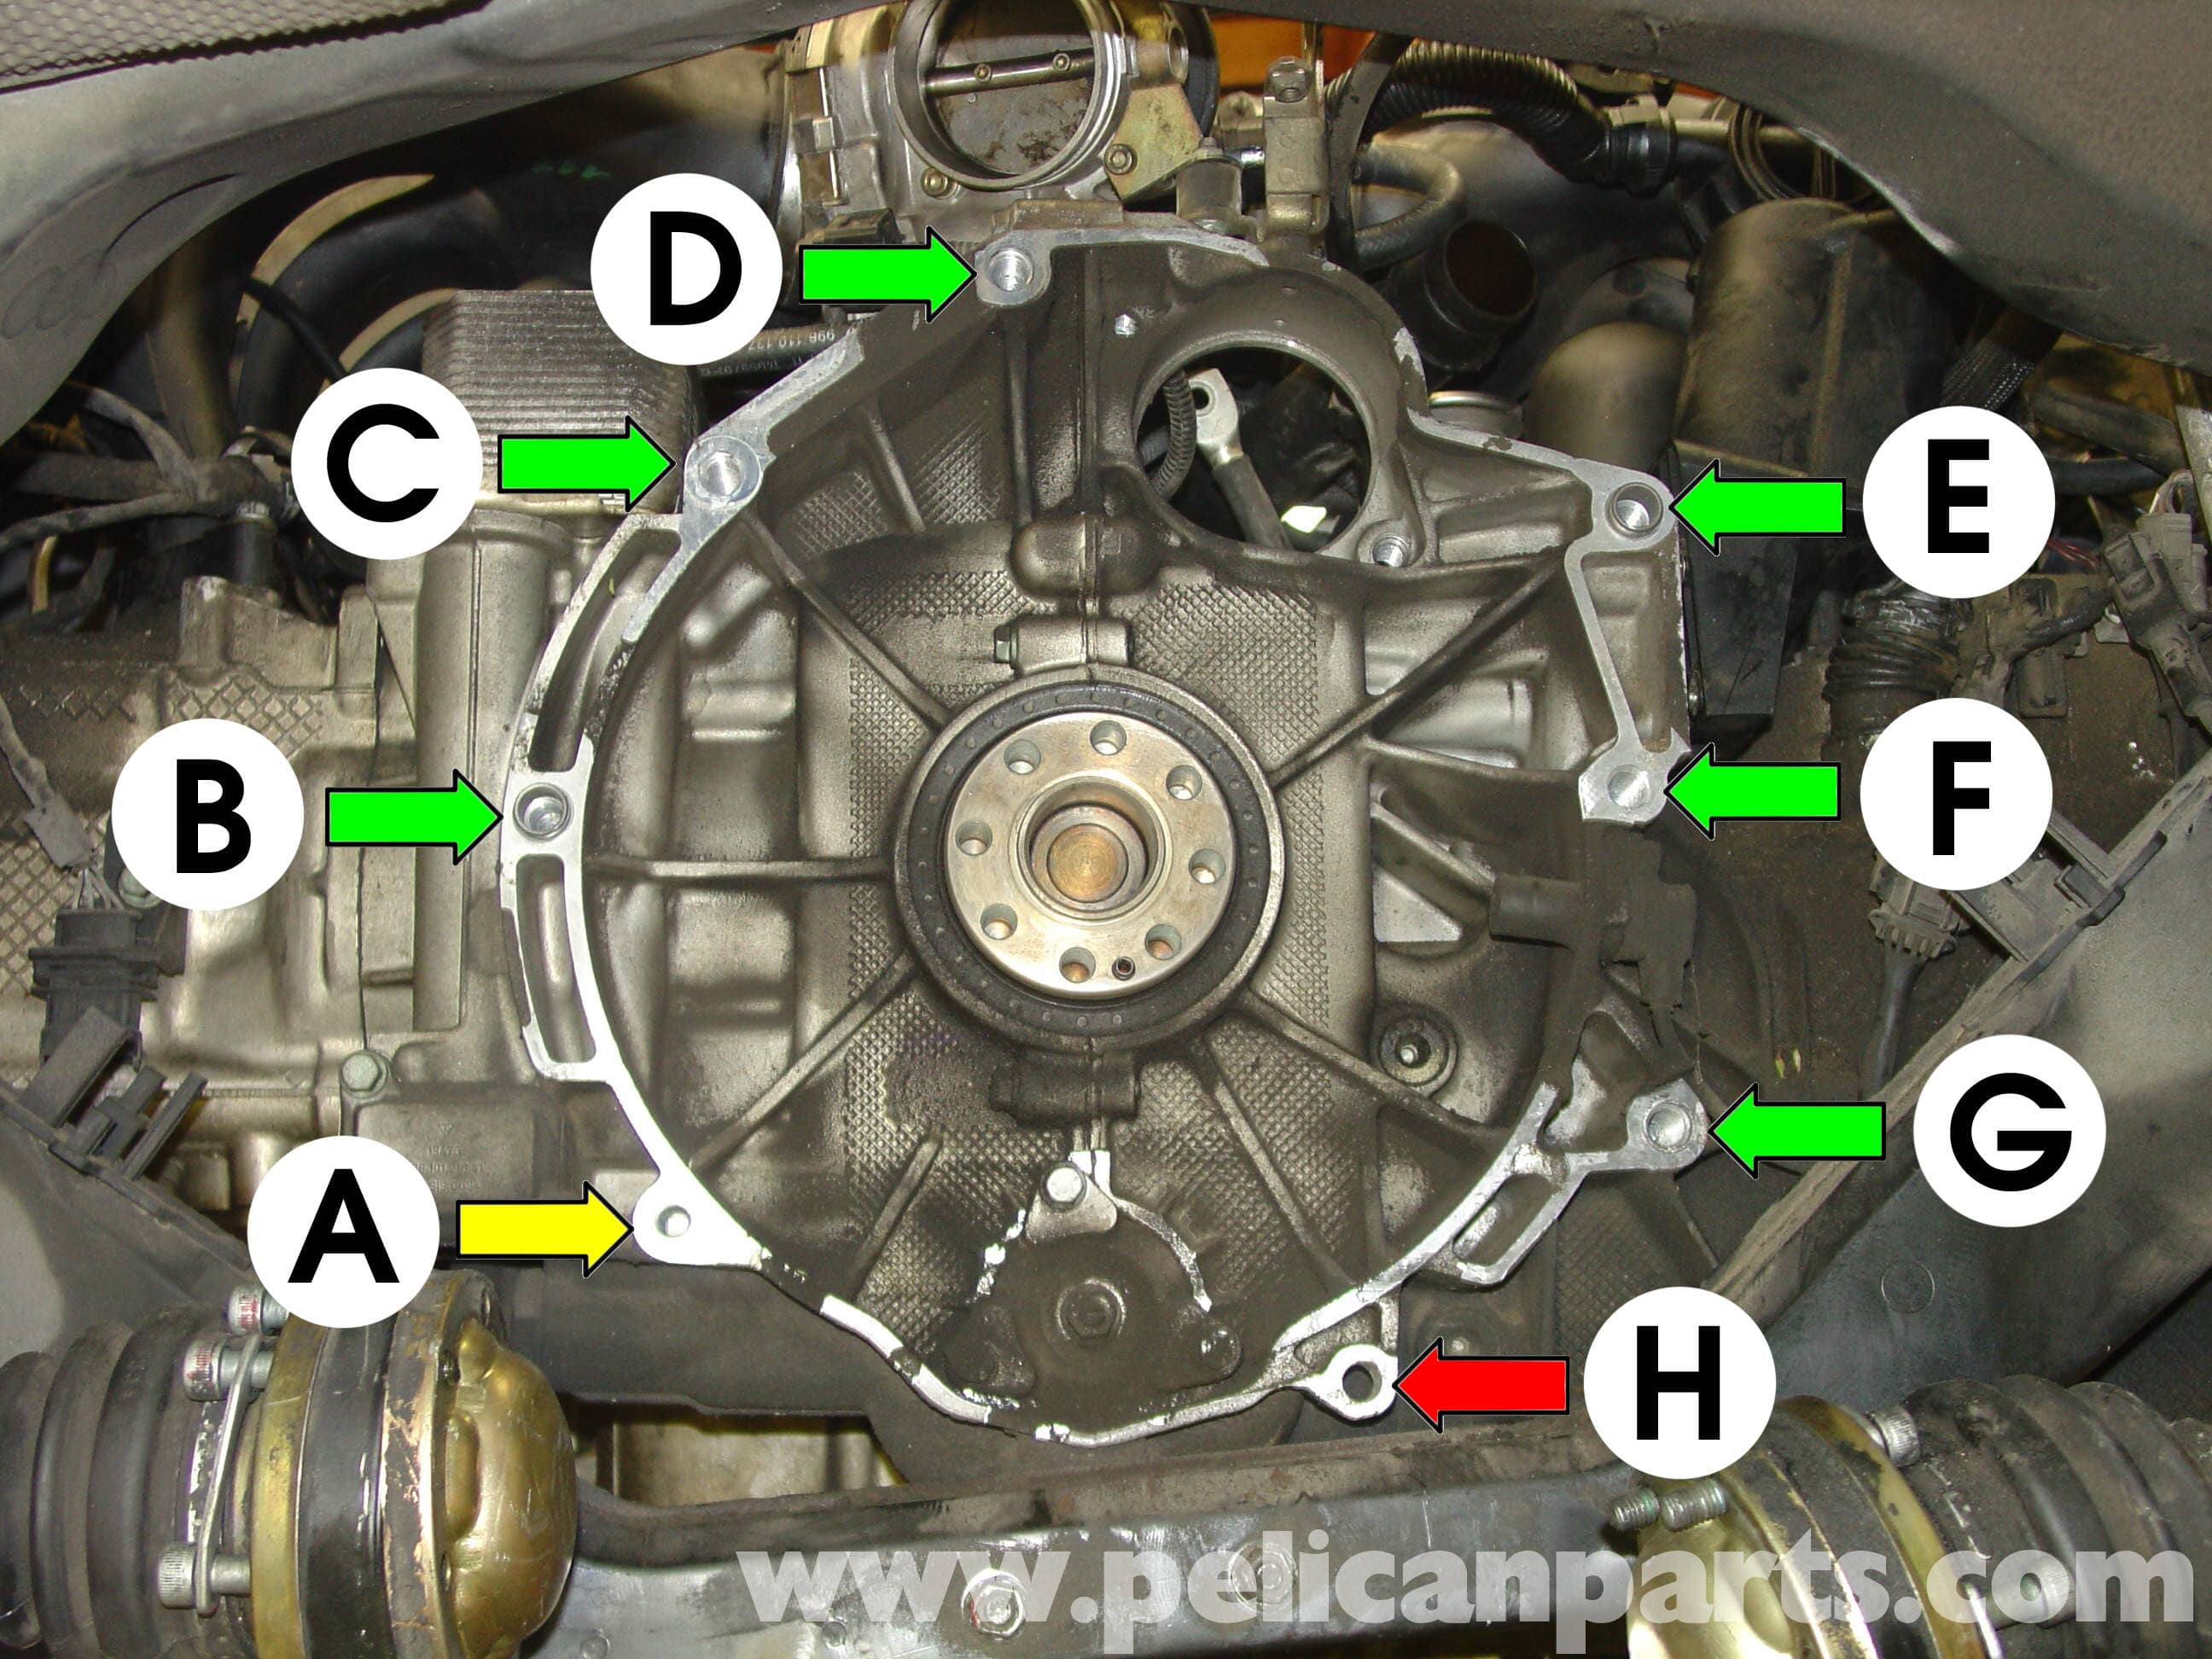 e46 m3 starter wiring diagram subwoofer home theater toyskids co porsche boxster transmission removal 986 987 1997 08 motor